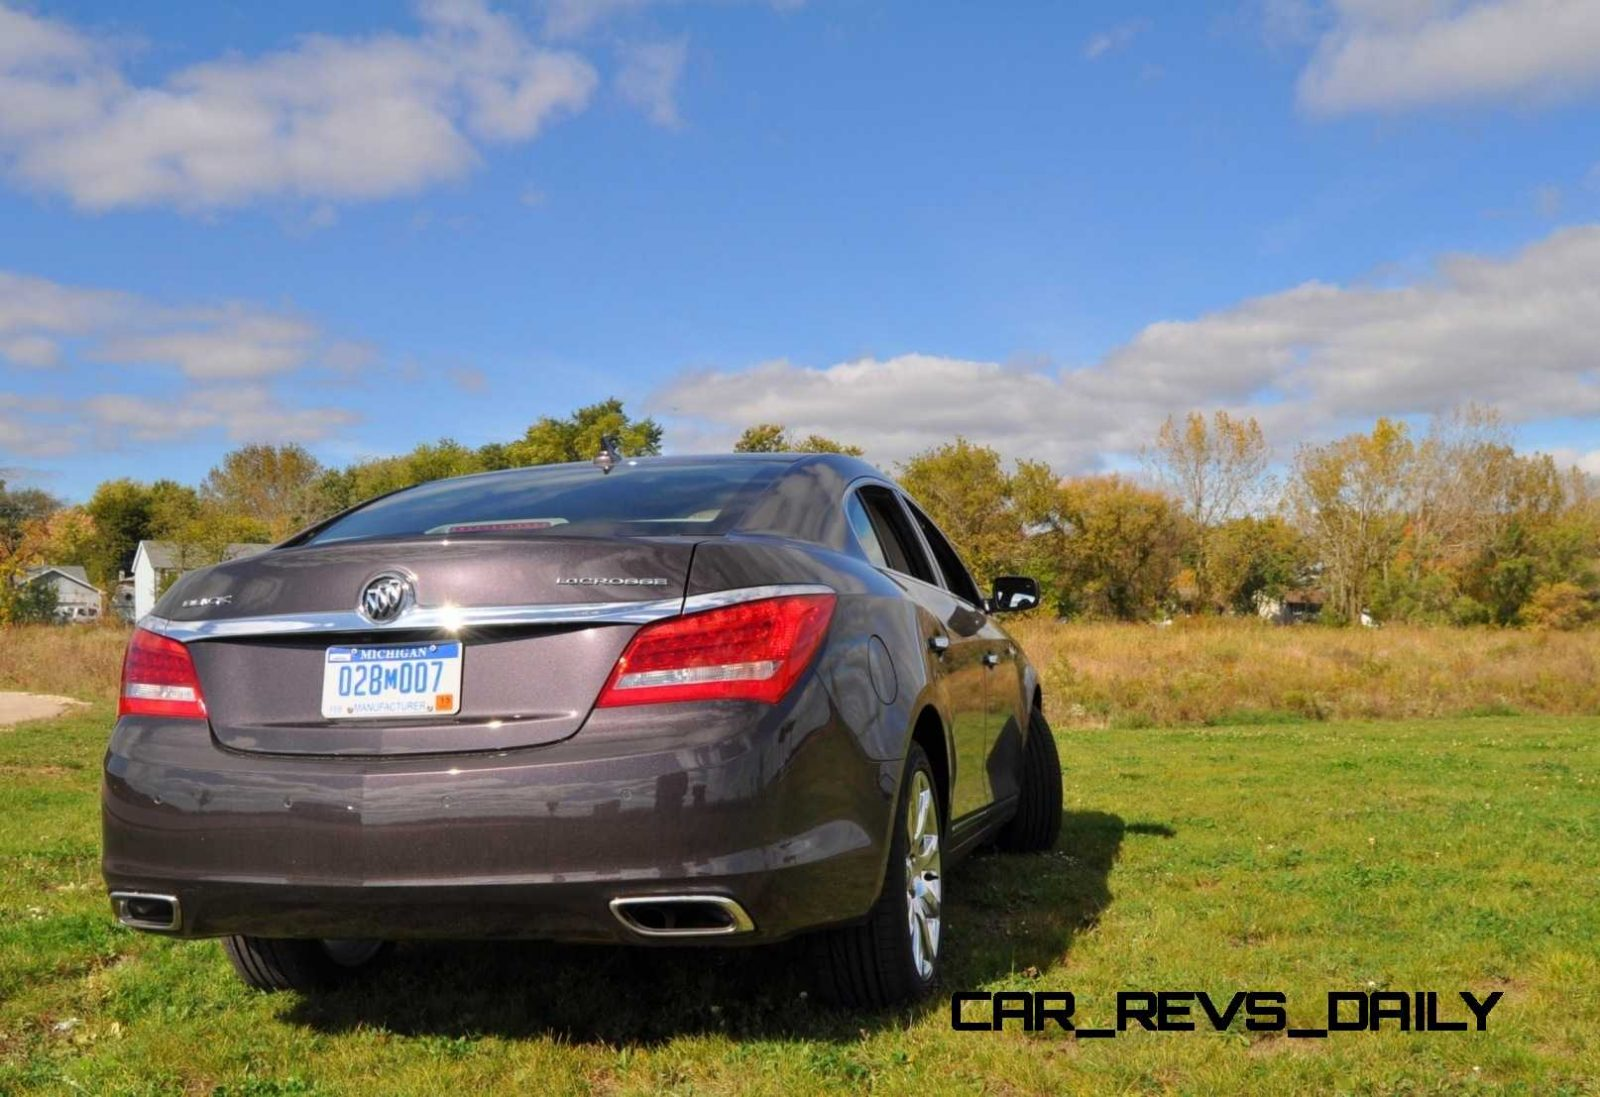 Driven Car Review - 2014 Buick LaCrosse Is Huge, Smooth and Silent15